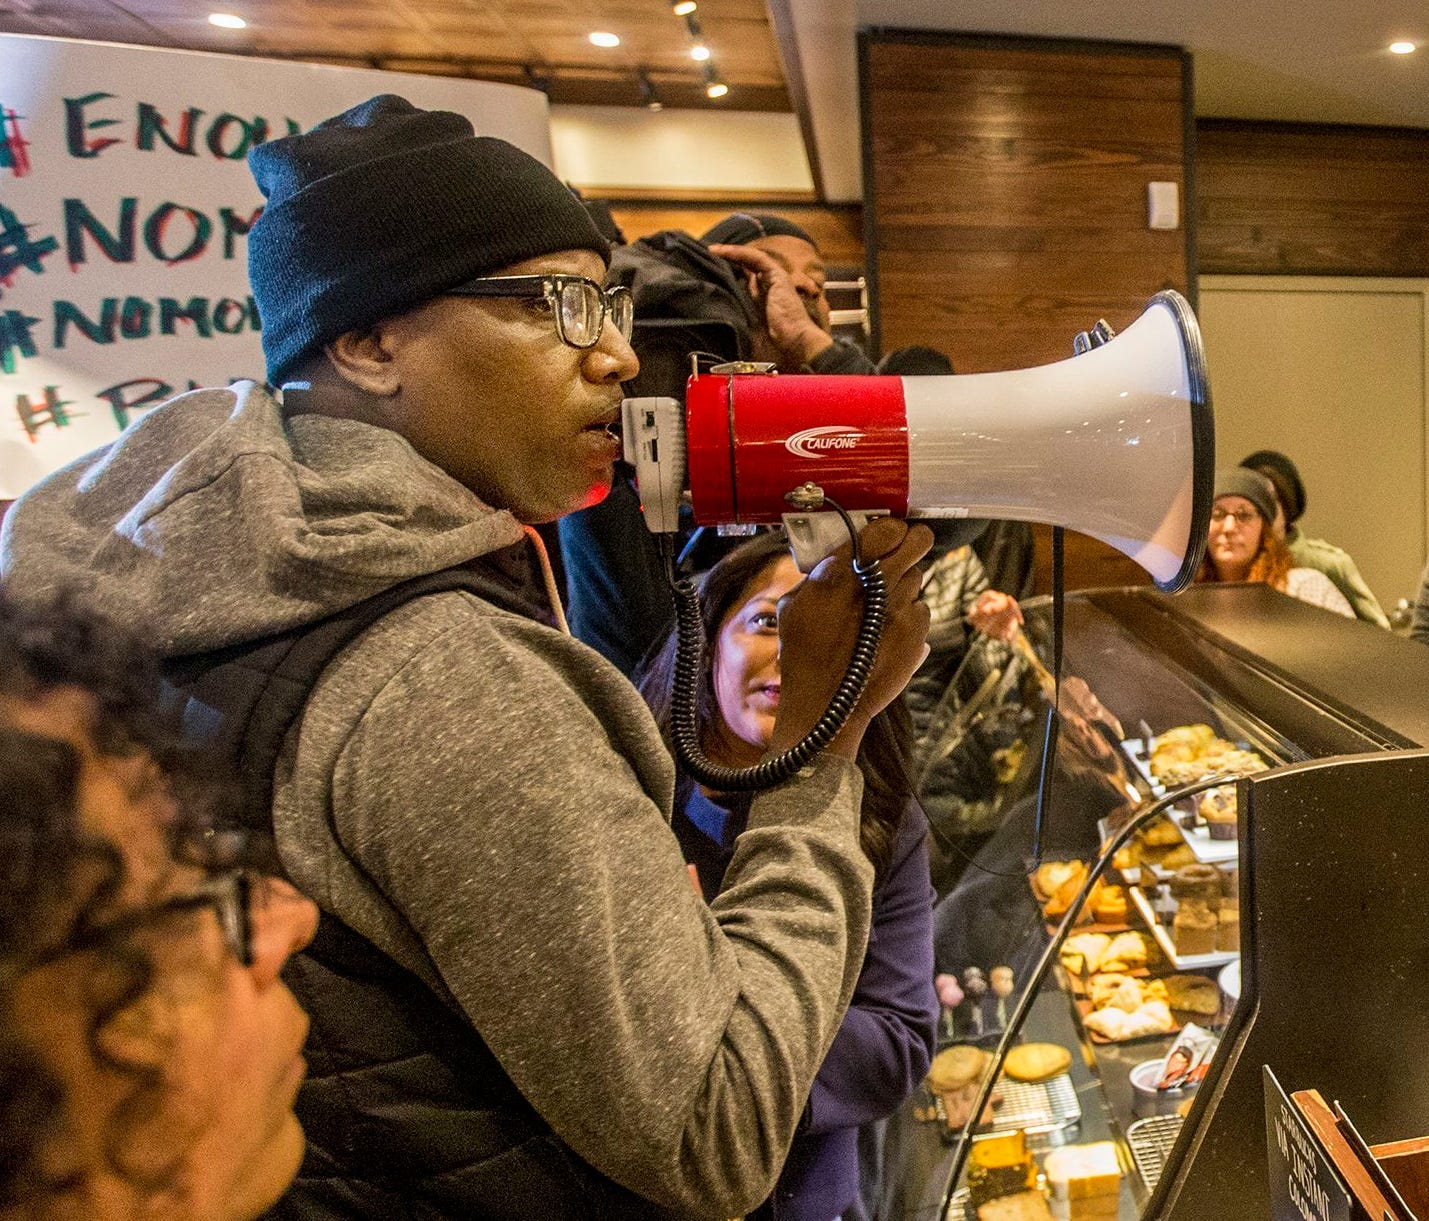 Local Black Lives Matter activist Asa Khalif, left, stands inside a Starbucks, April 15, 2018, demanding the firing of the manager who called police resulting in the arrest of two black men on Thursday. The arrests were captured on video that quickly